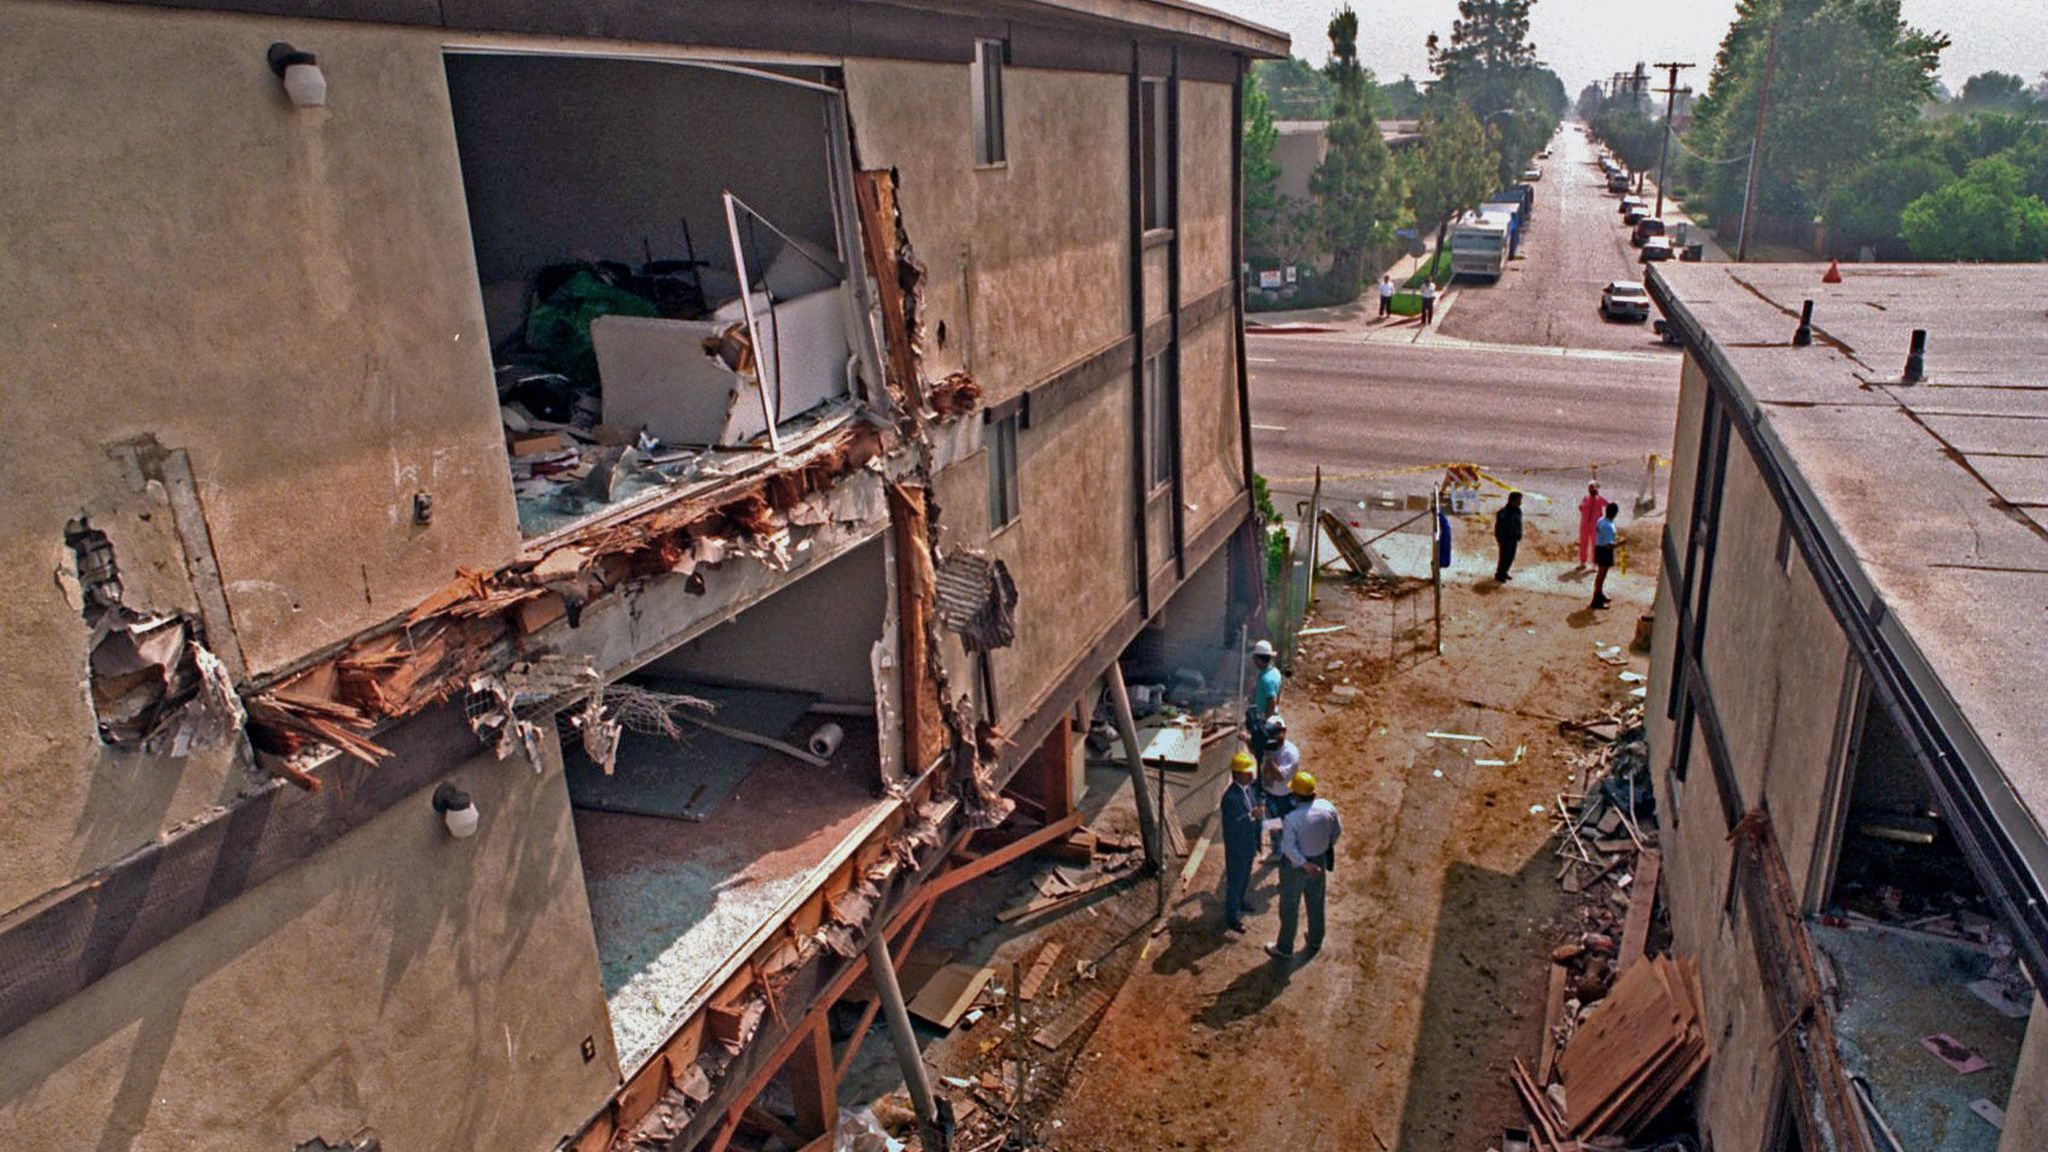 Workers begin to demolish the Northridge Meadows apartment building, whose ground floor collapsed in the 1994 earthquake.